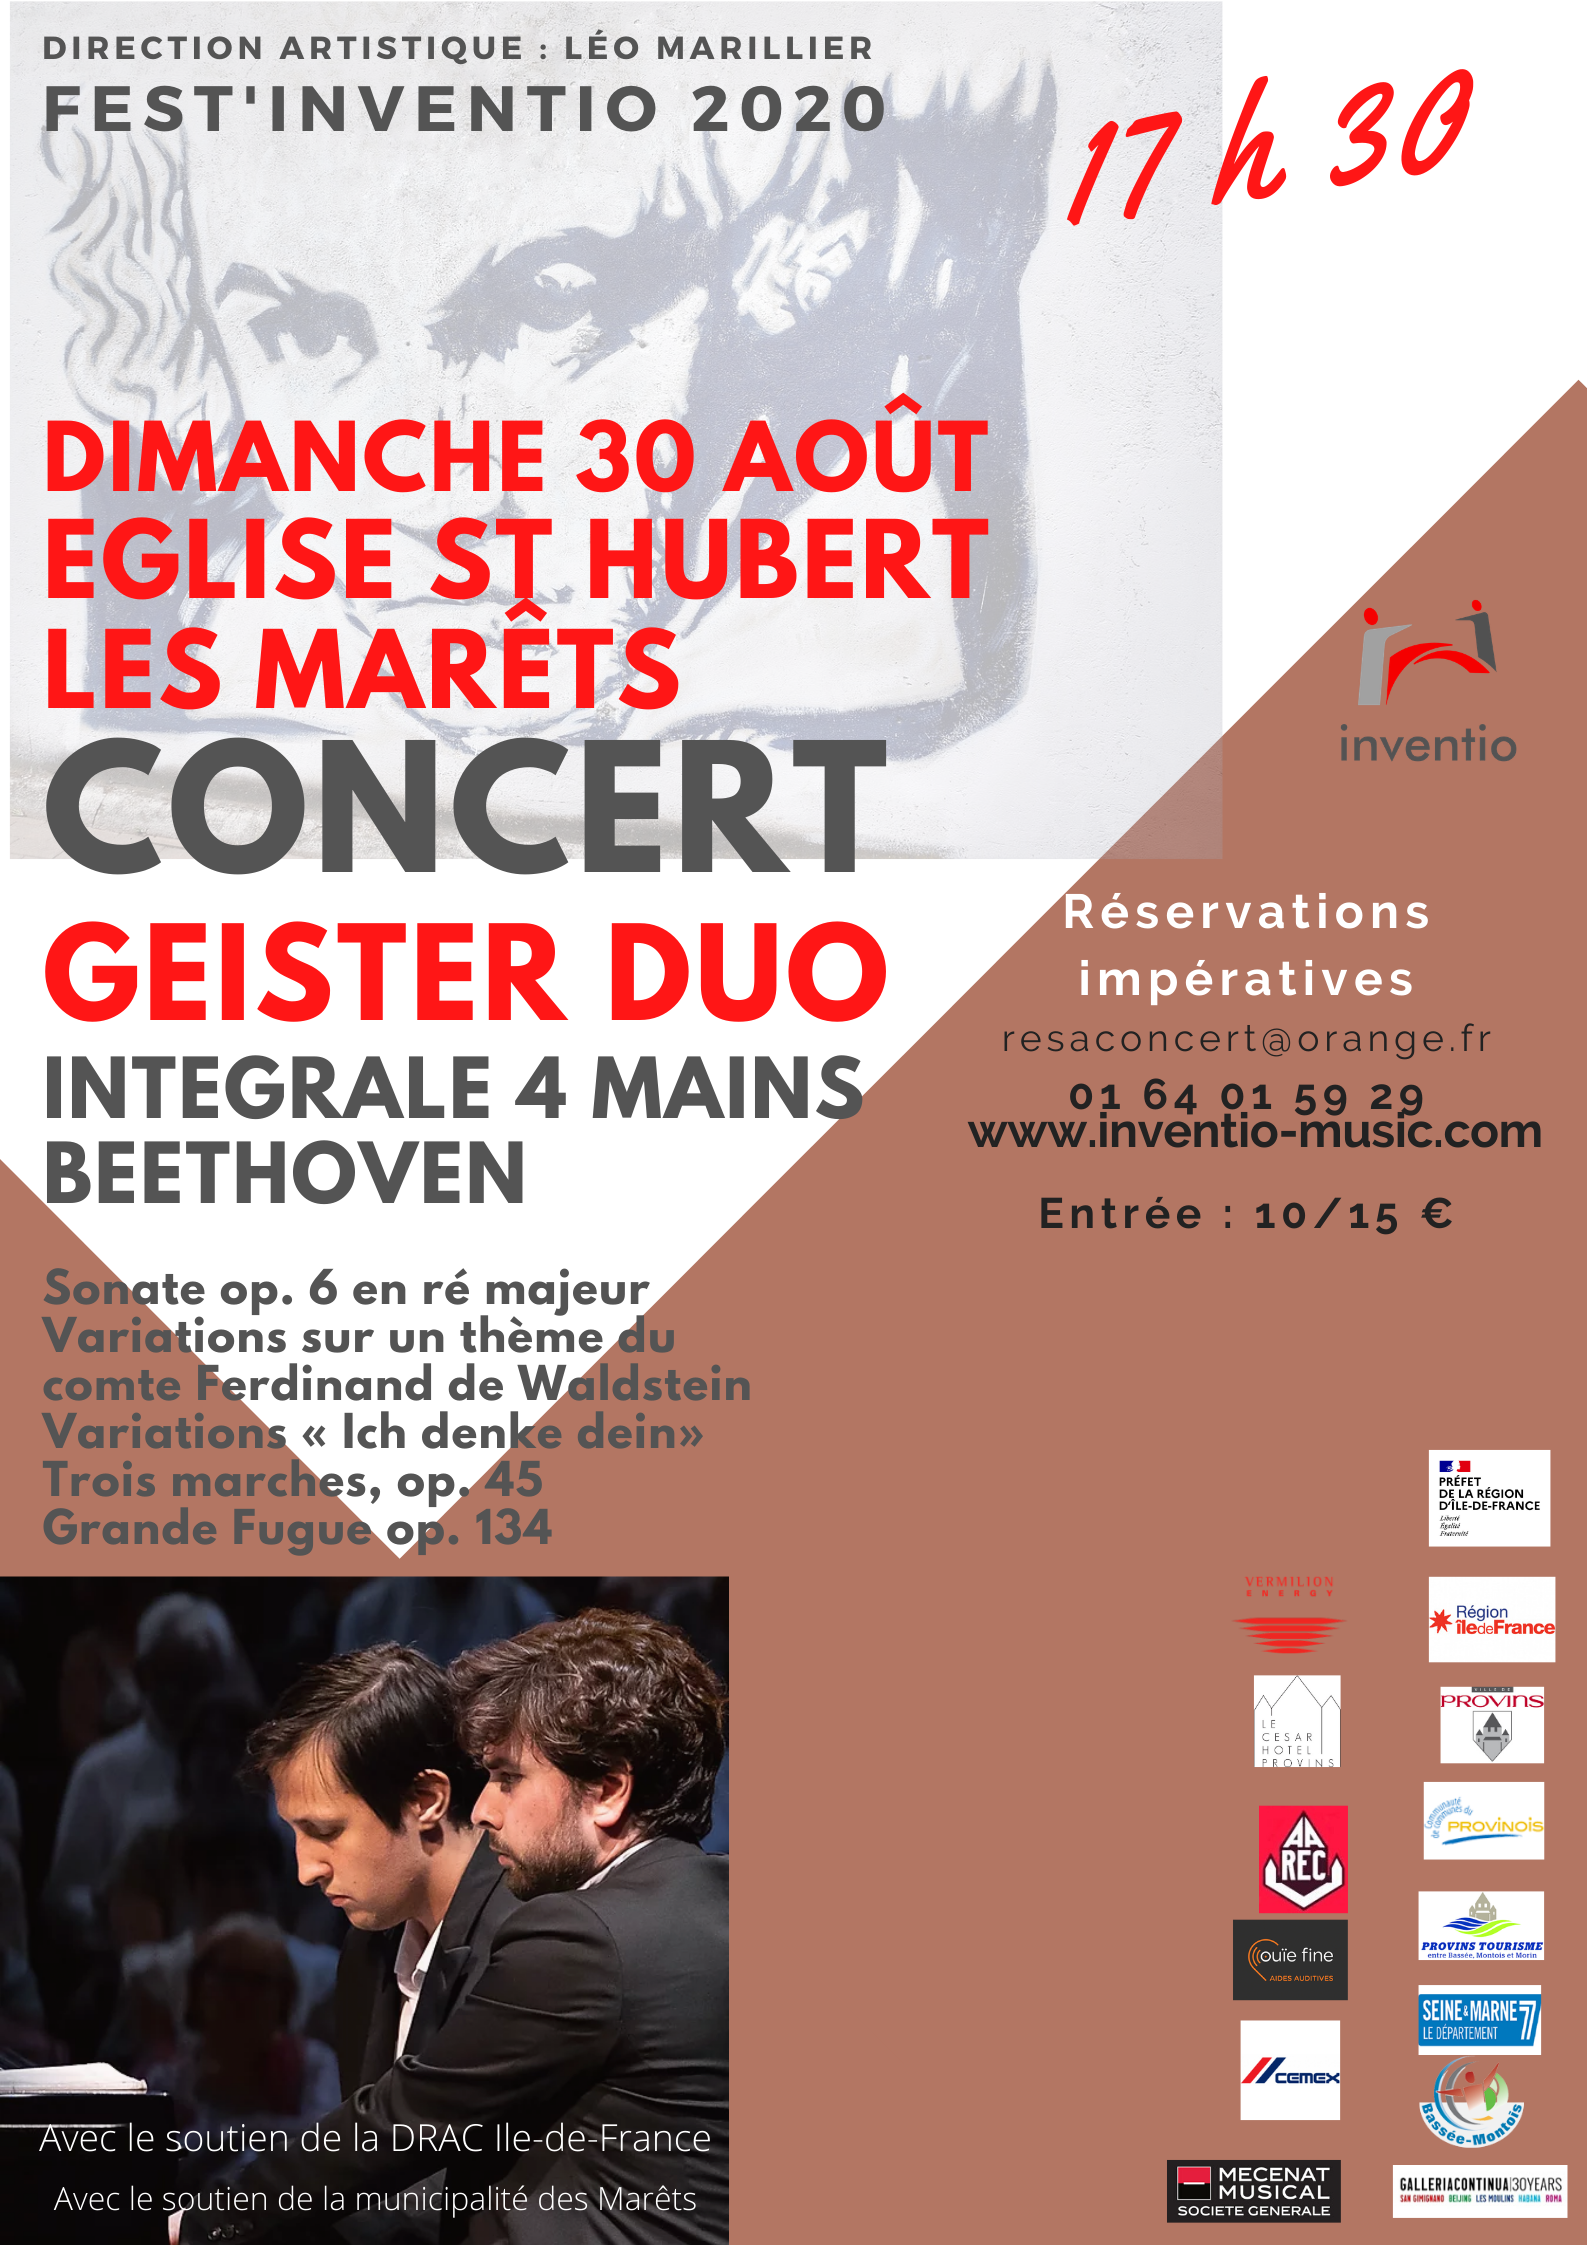 FEST'INVENTION CONCERT GEISTER DUO INTEGRALE 4 MAINS BEETHOVEN @ Eglise St Hubert